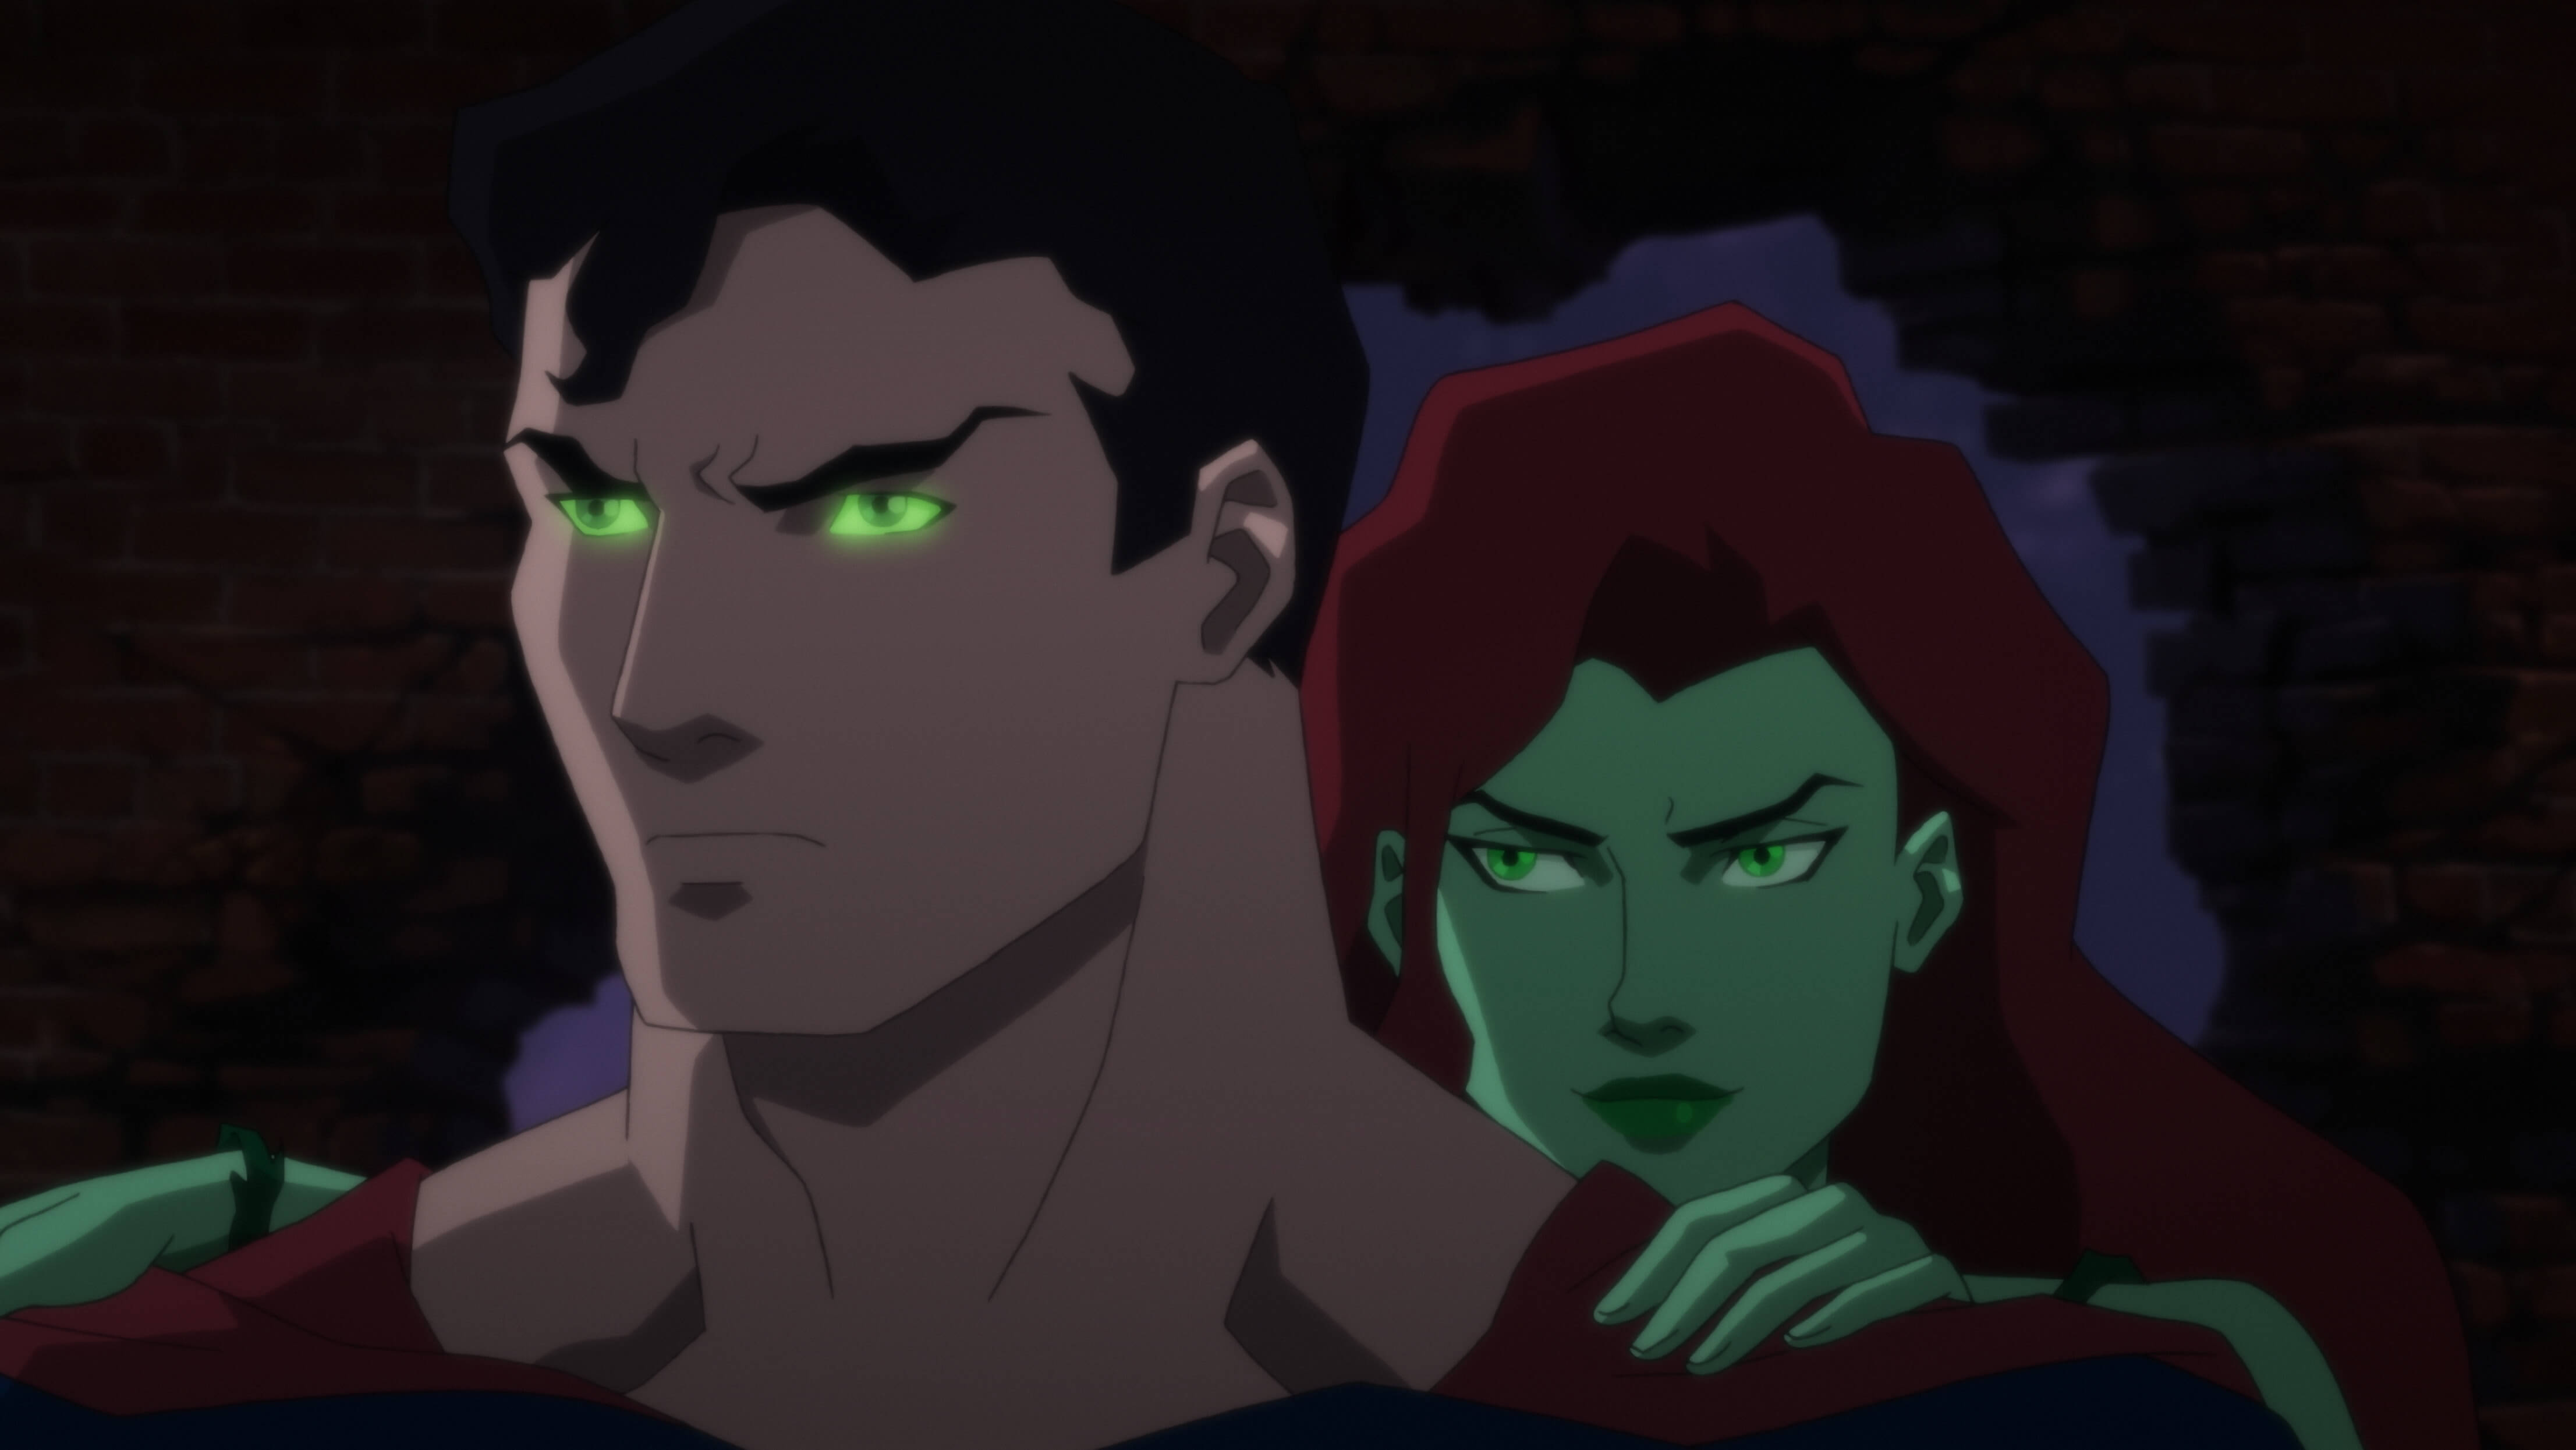 186_BatmanHush_Stills-15.jpg